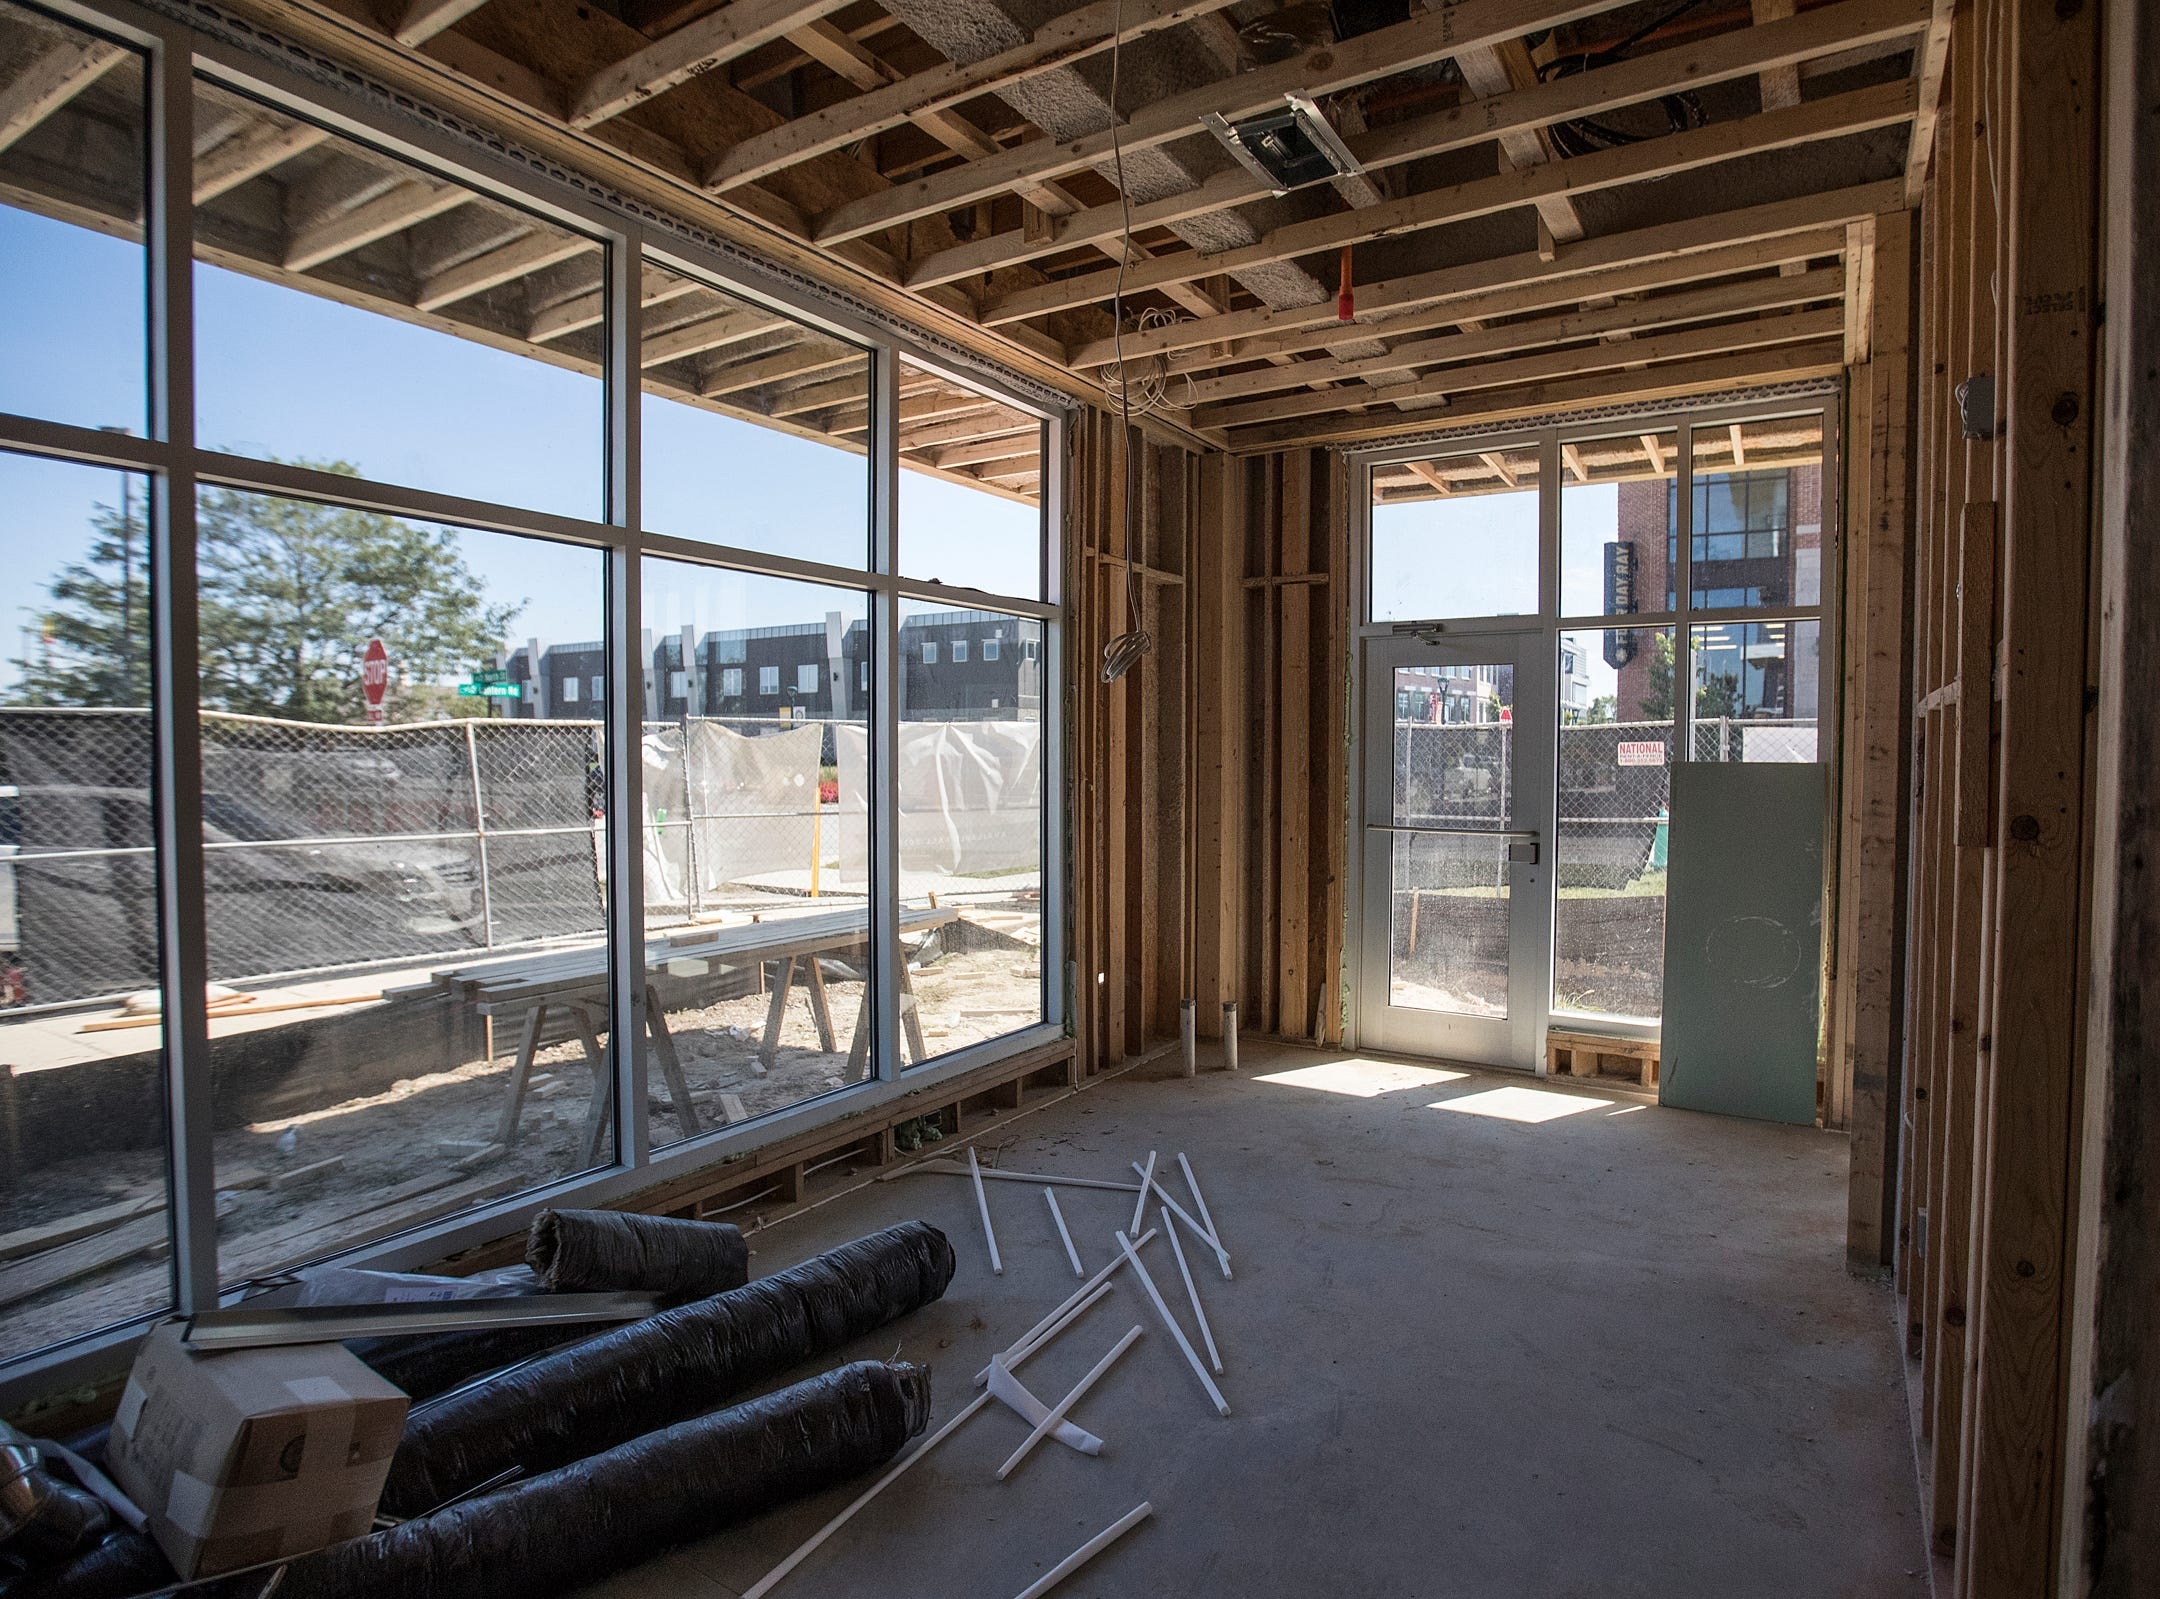 The view from one of 11 live/work spaces at Spark Apartments in Fishers, Ind., on Friday, Sept. 14, 2018. Each live/work unit combines a studio apartment and storefront retail or commercial space. The complex also offers 200 one-, two- and three-bedroom apartments.